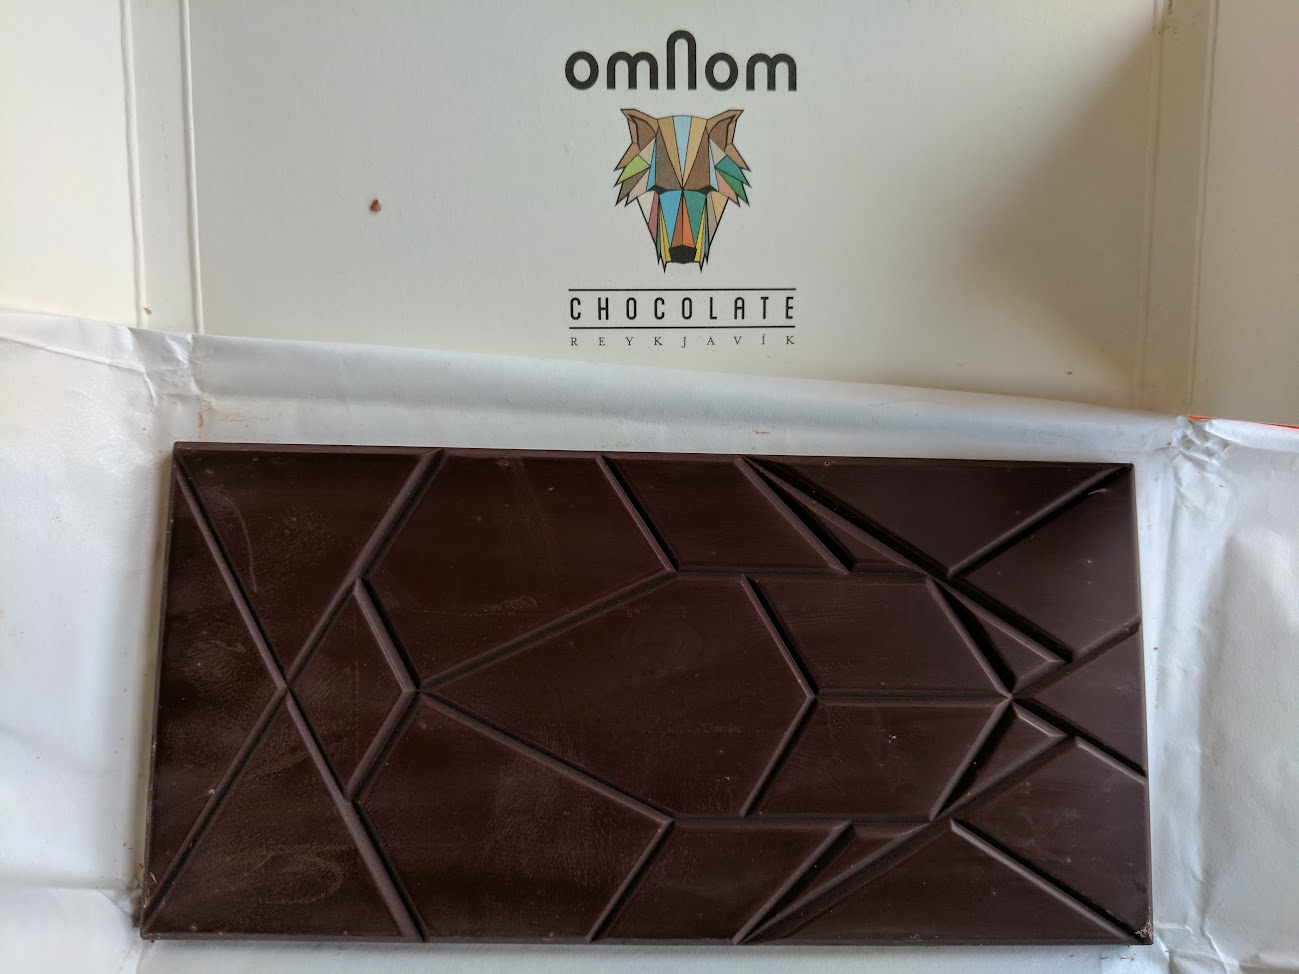 70% omnom bar open